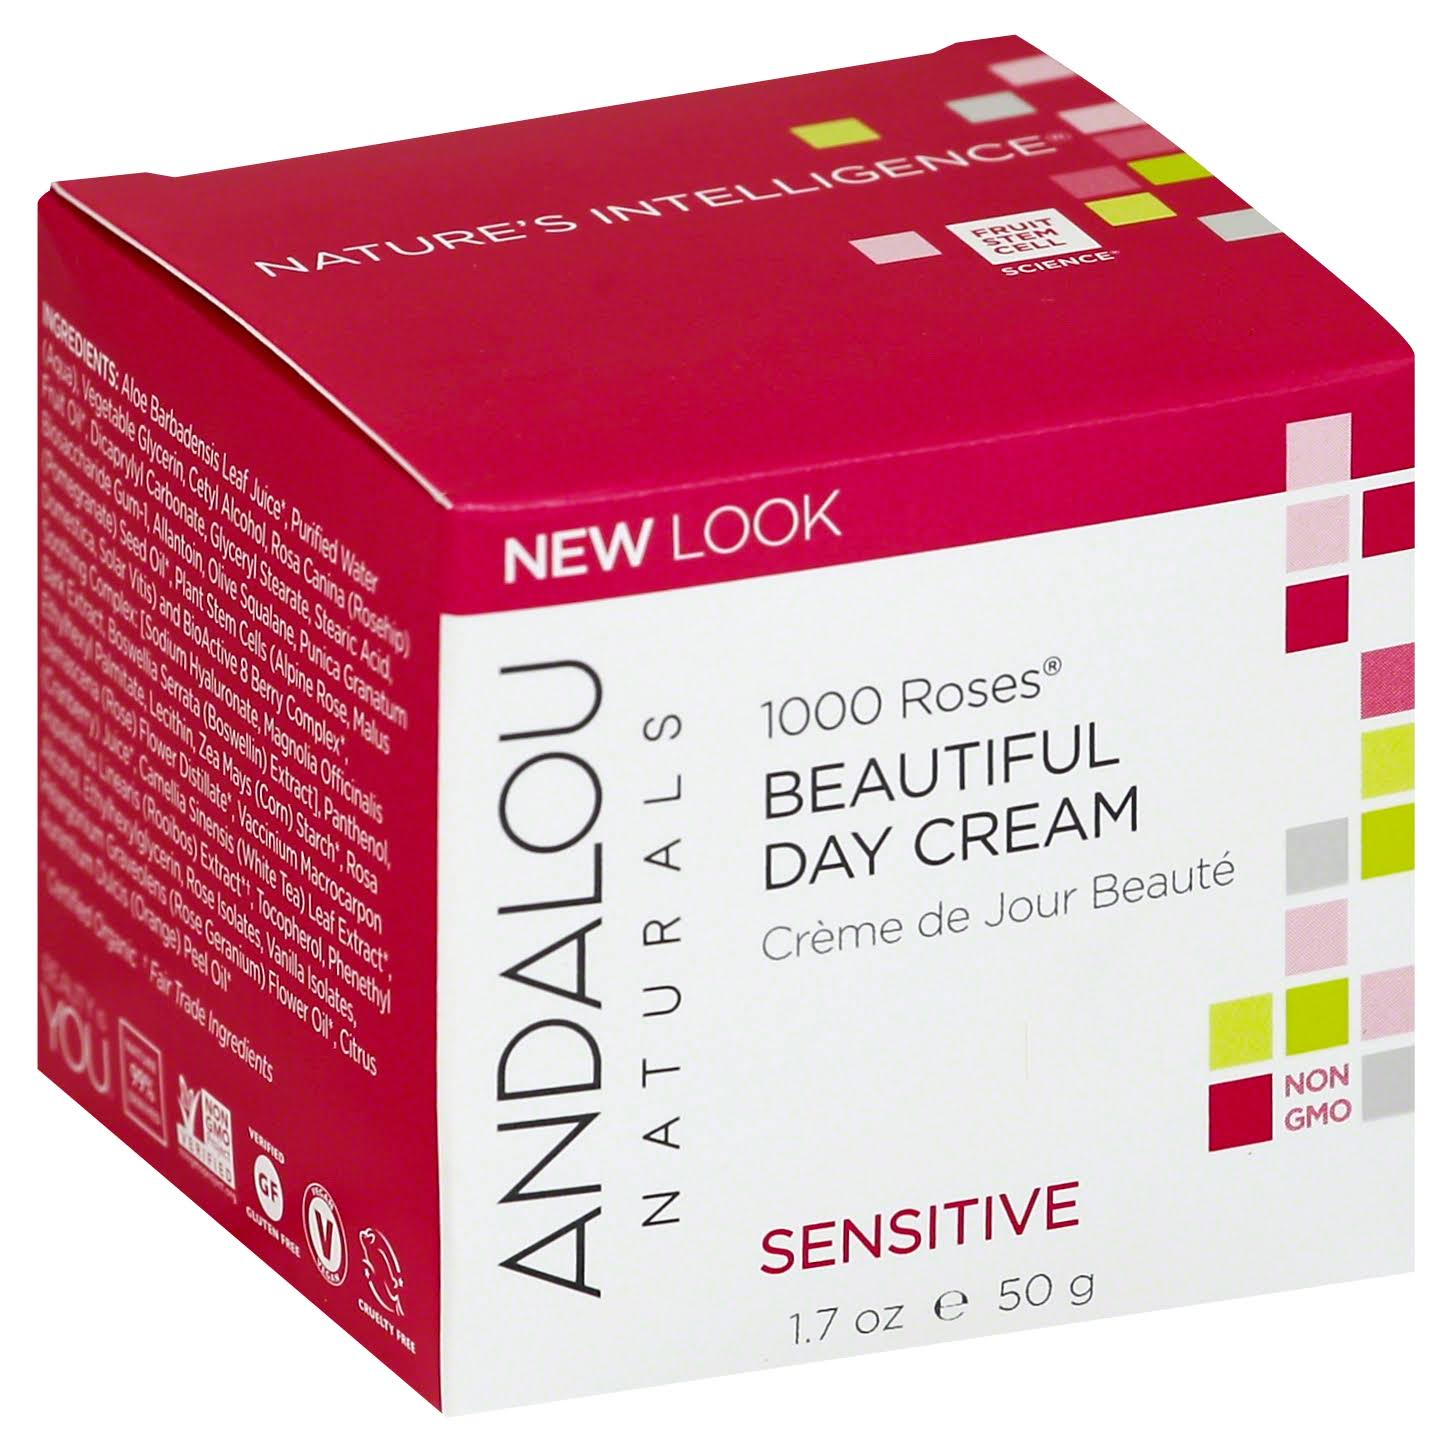 Andalou 1000 Roses Beautiful Day Cream